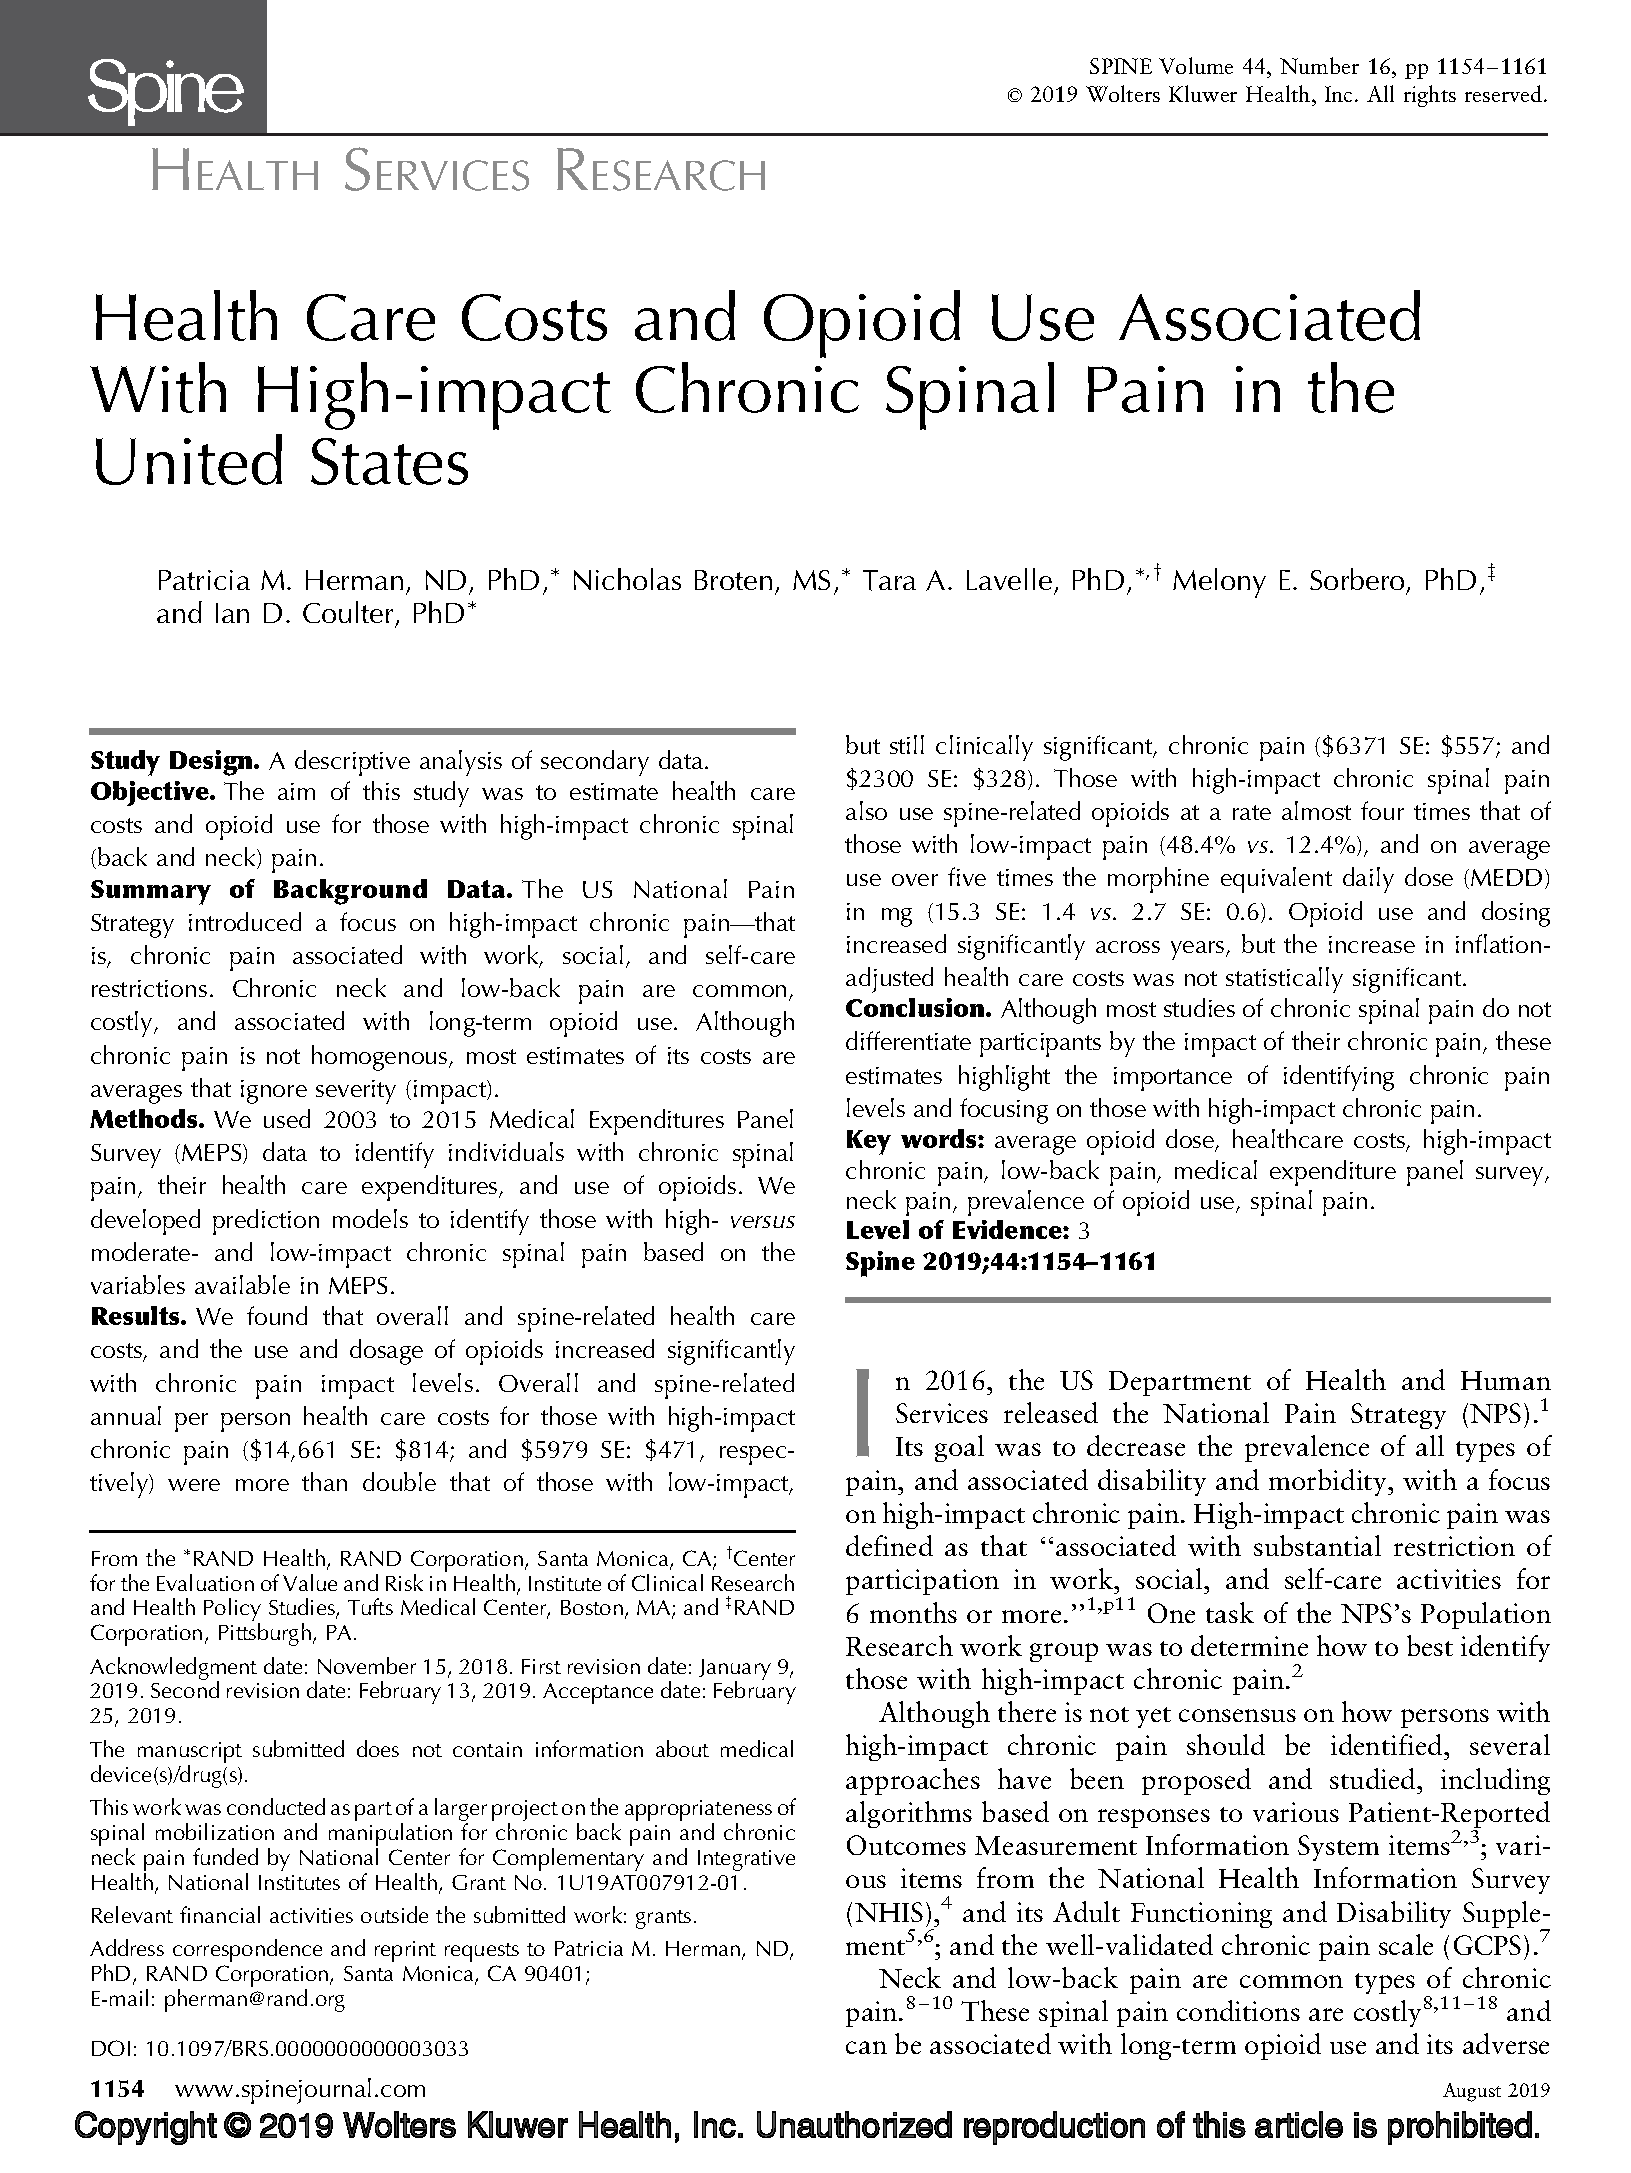 Health Care Costs and Opioid Use Associated With High-impact Chronic Spinal Pain in the US